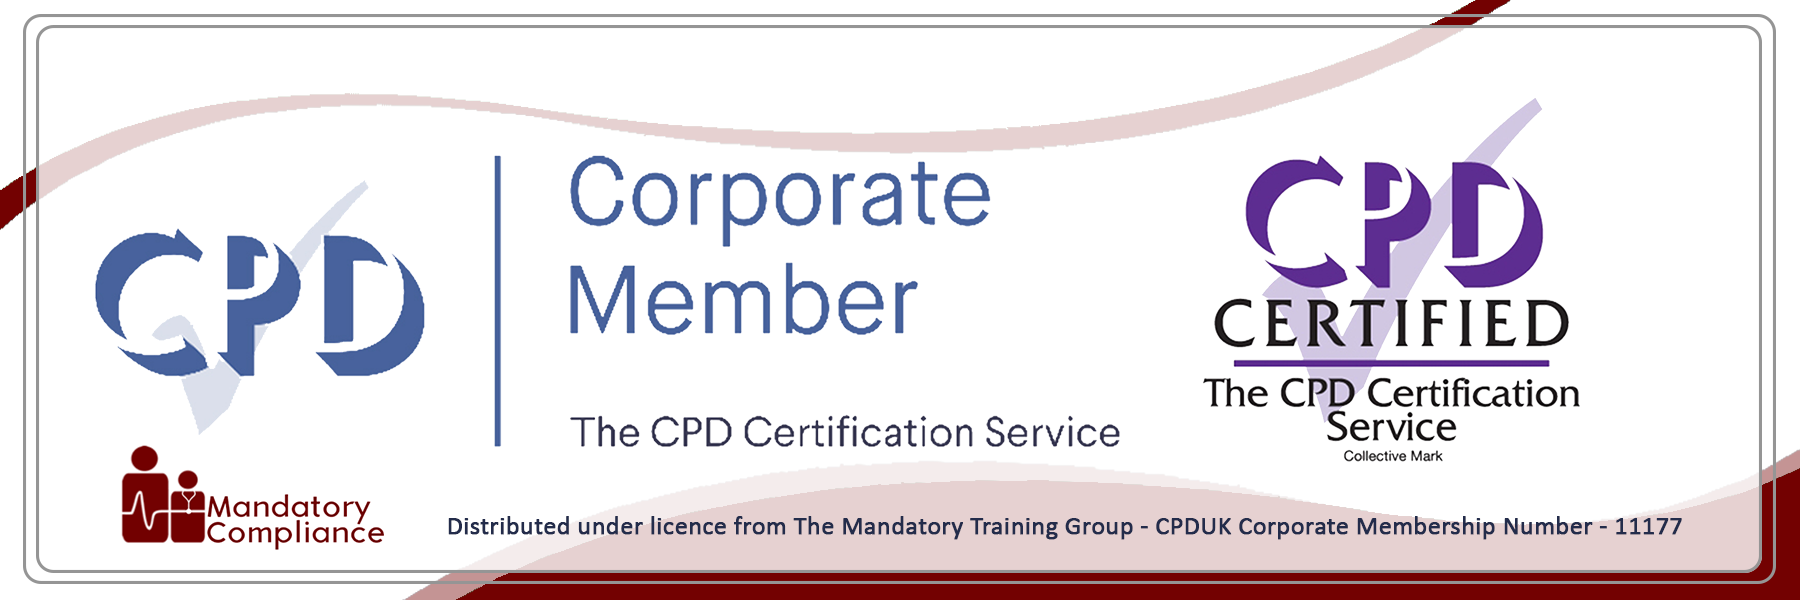 Access 2016 Essentials - Online Training Course - CPDUK Accredited - Mandatory Compliance UK -